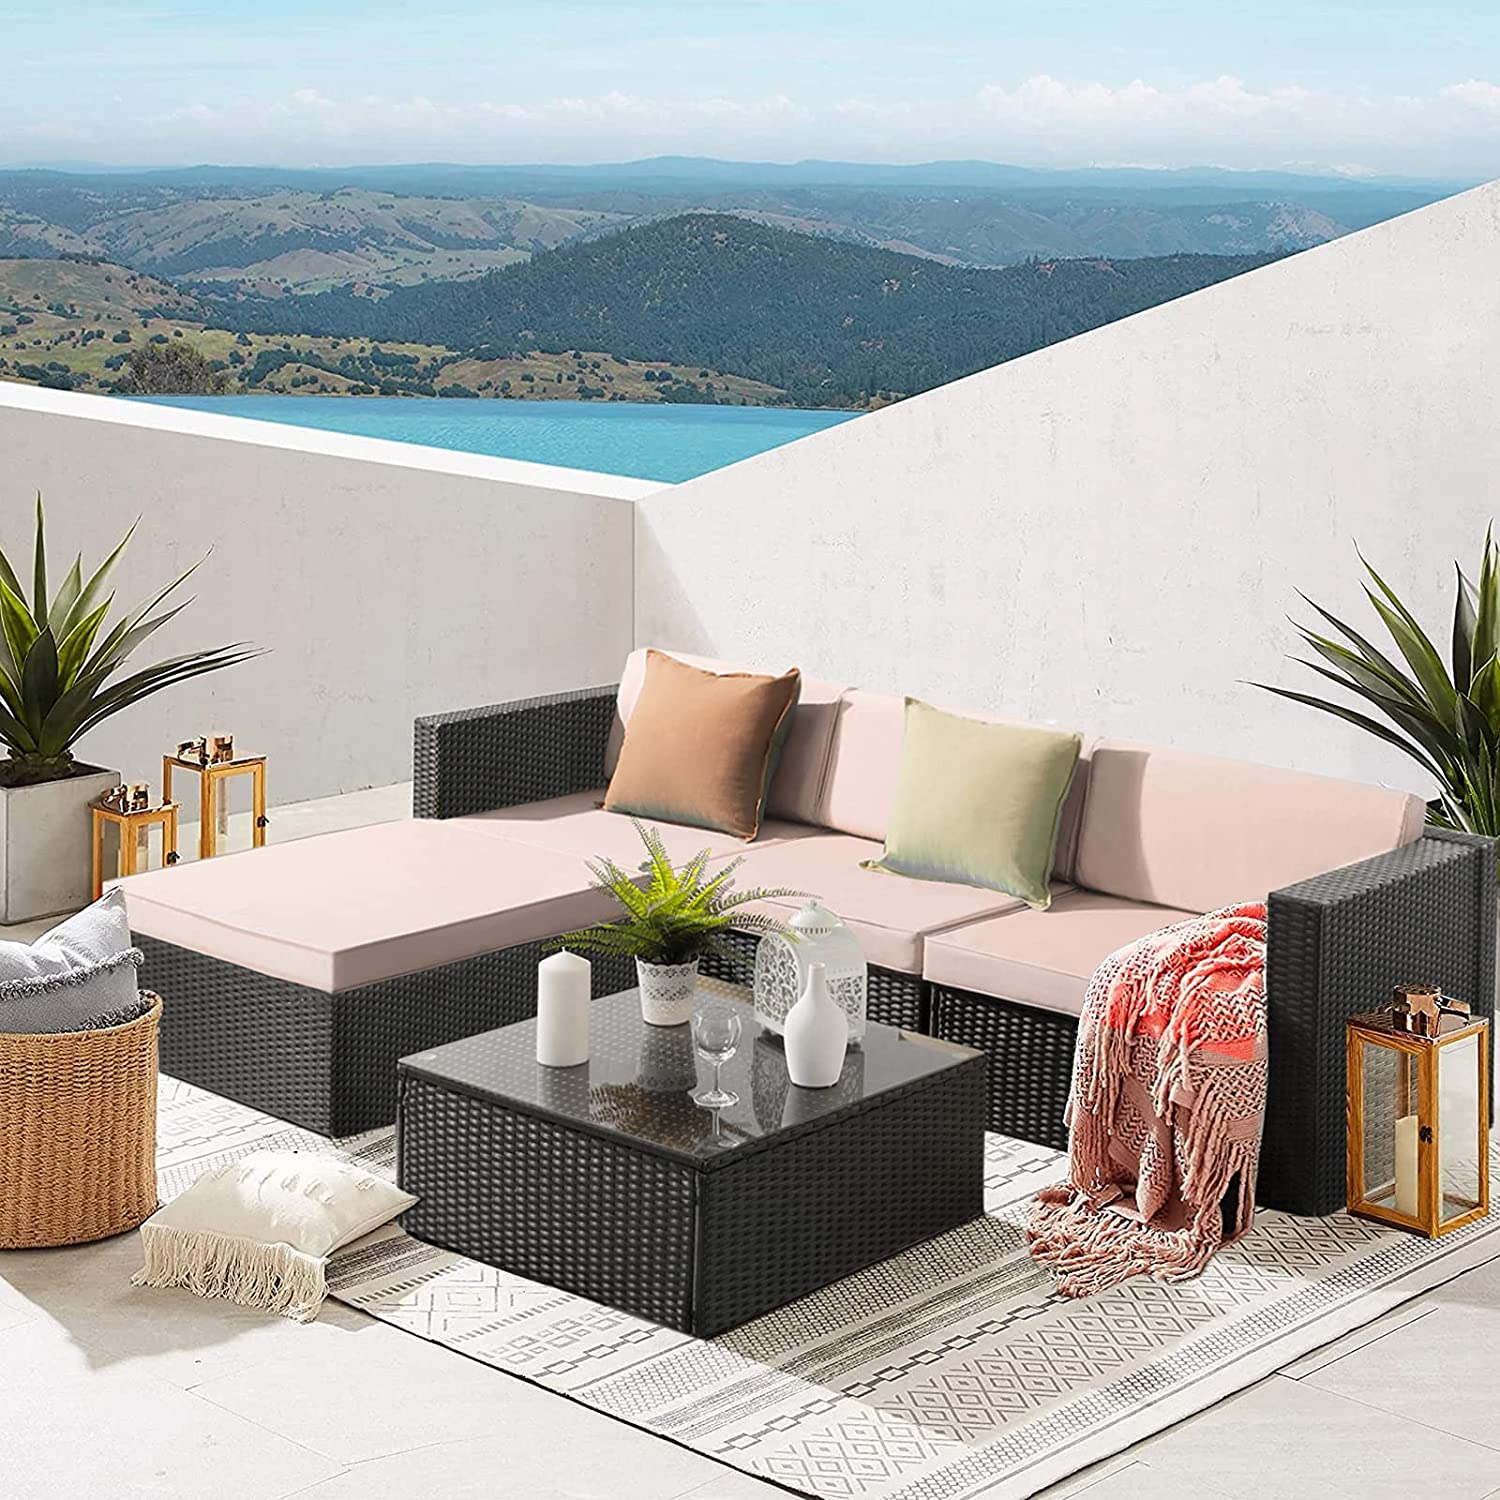 Waleaf 5 Pieces Patio Furniture Outdoor Sets Sofa Very popular Online limited product Cus Sectional